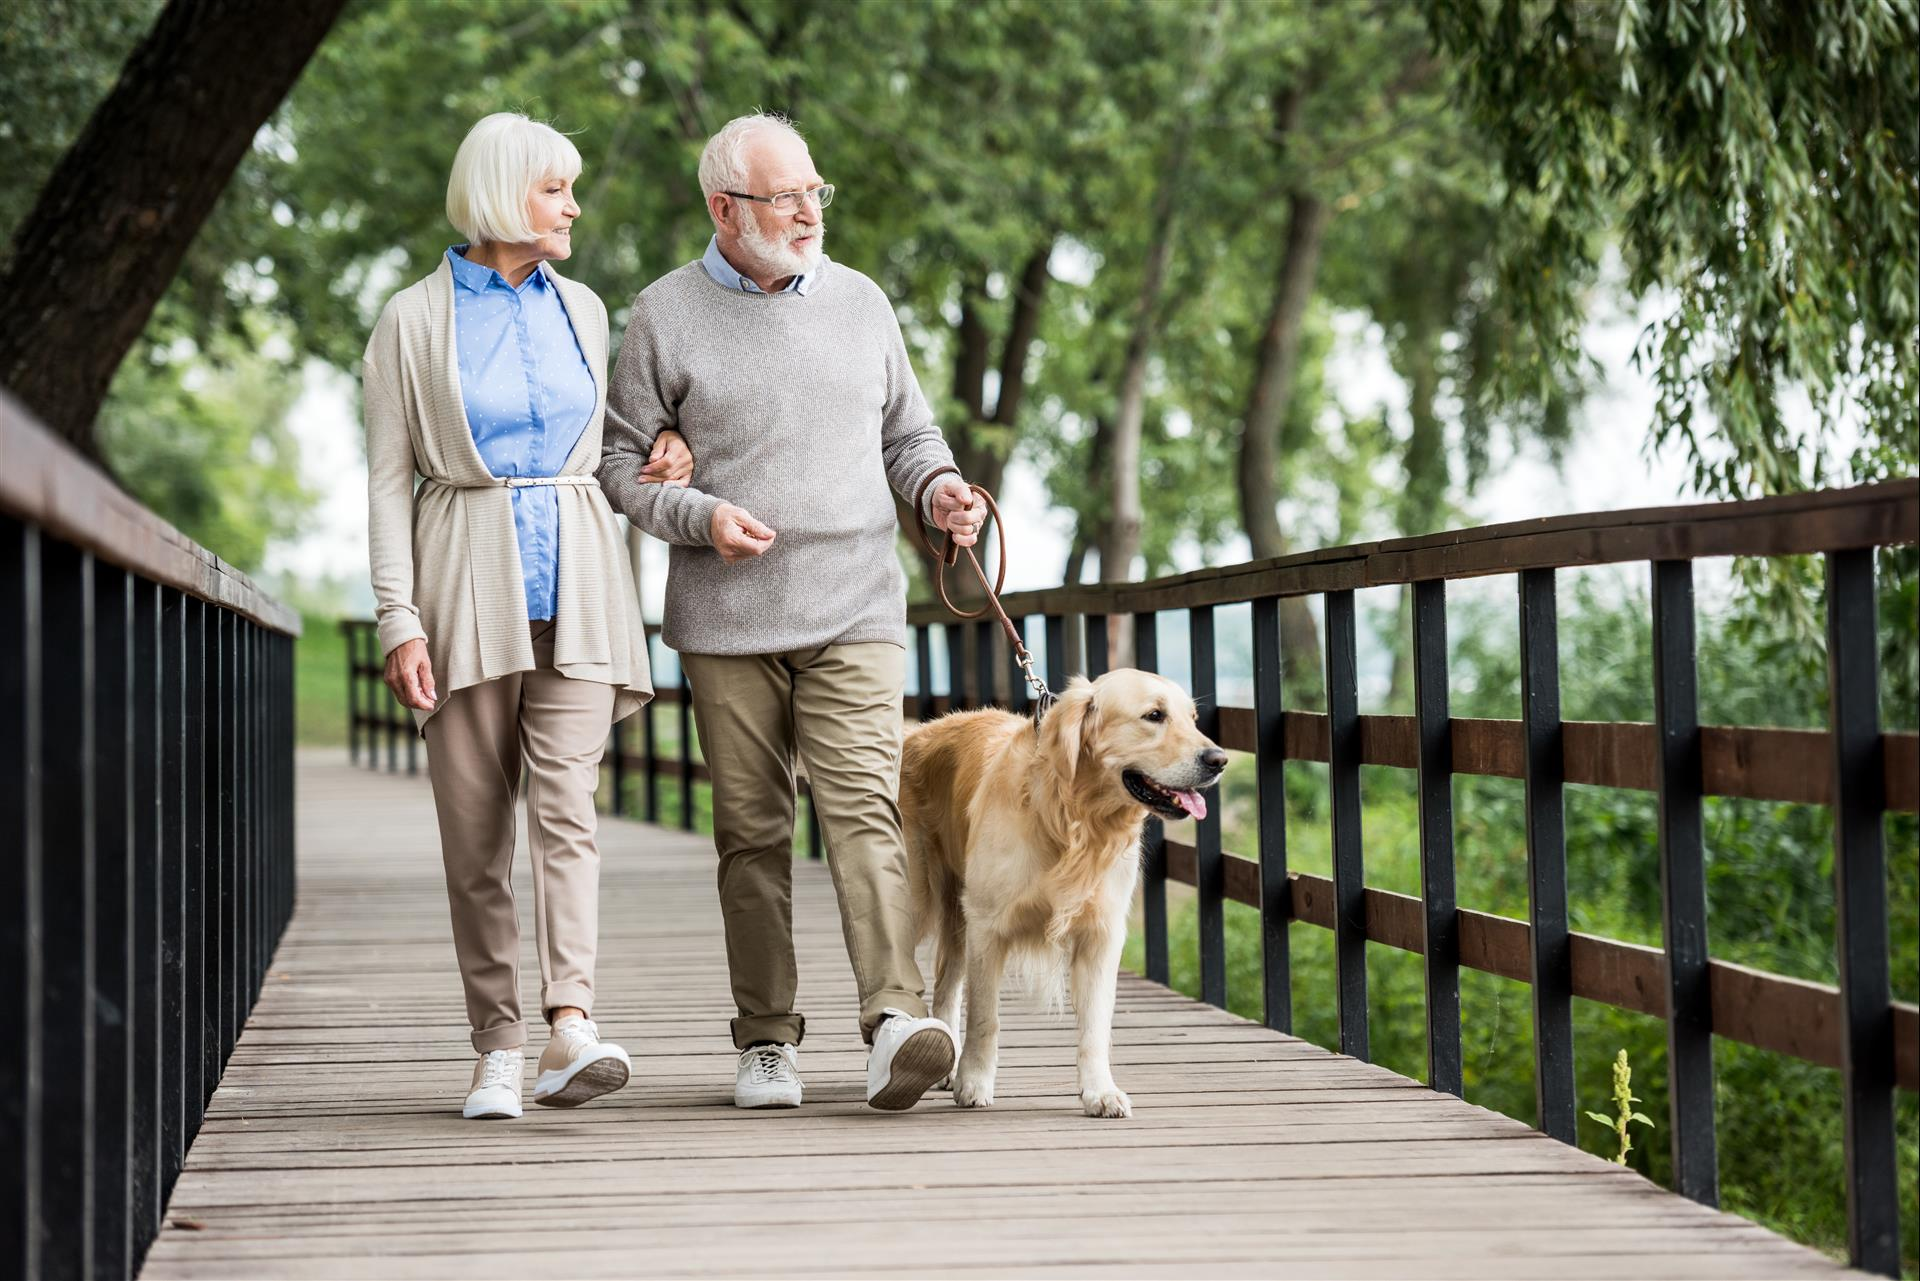 4 Mental and Physical Health Benefits of Taking a Walk